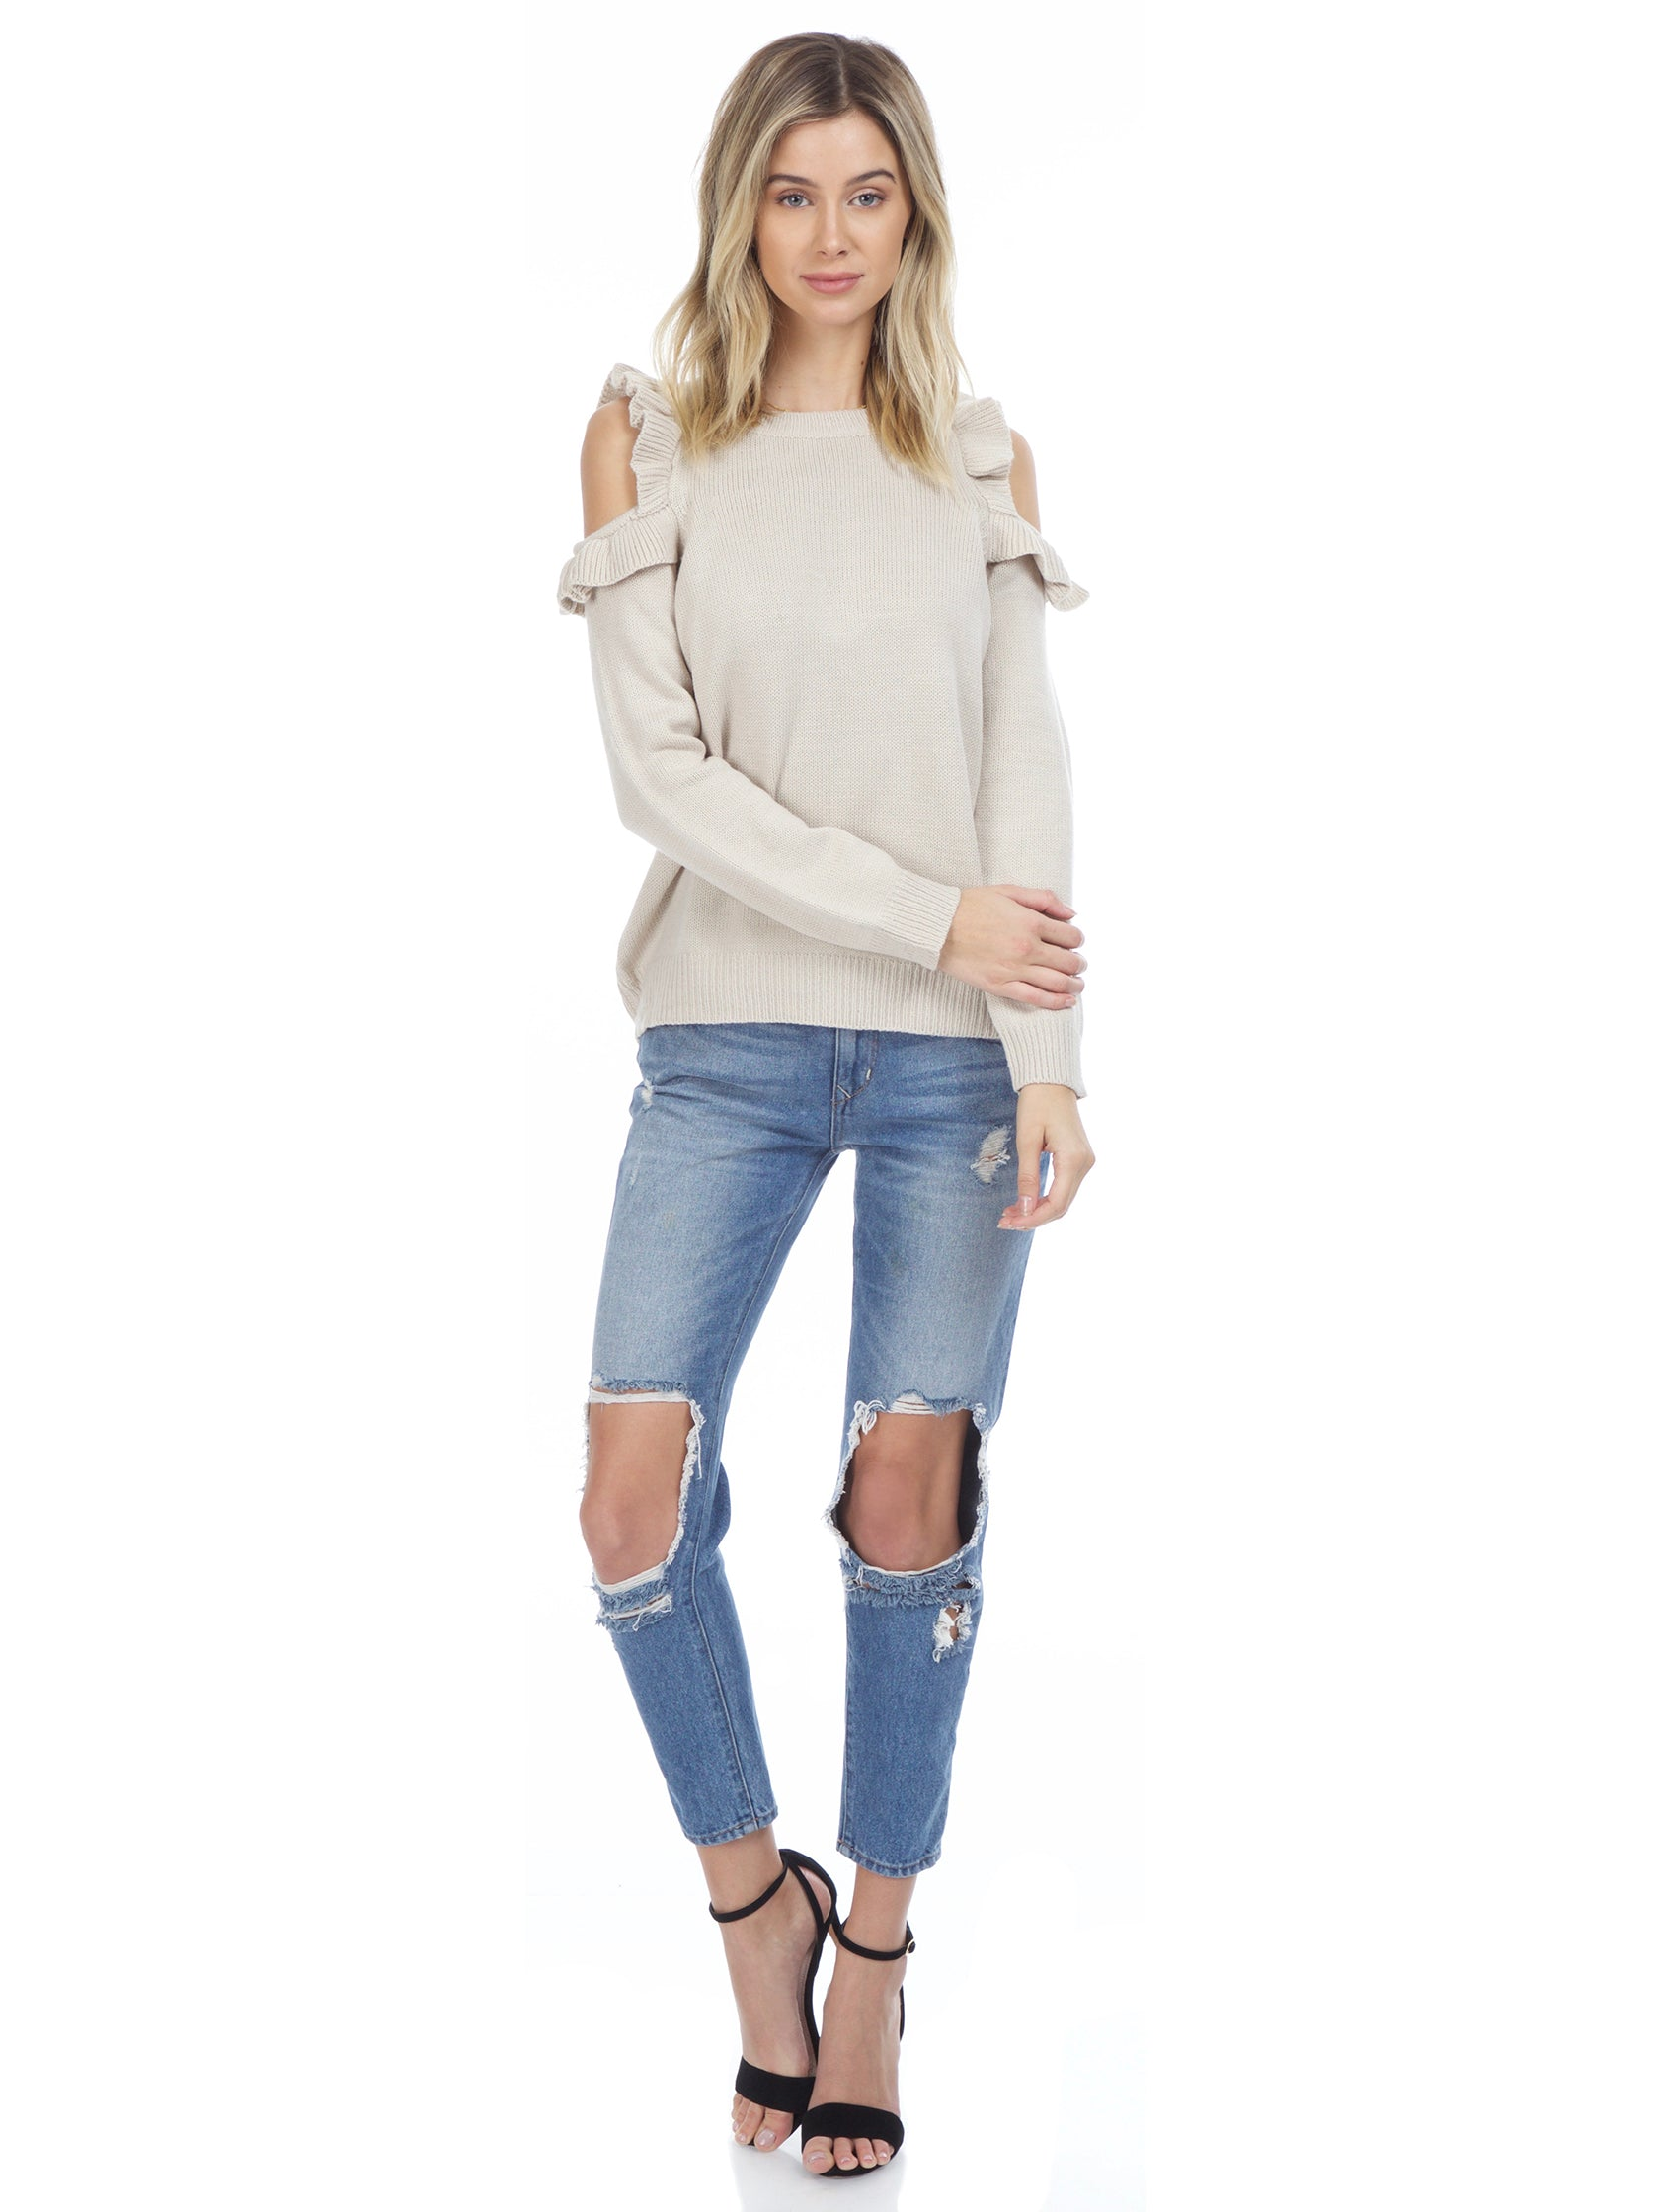 Girl wearing a sweater rental from FashionPass called Harmony Cold Shoulder Sweater